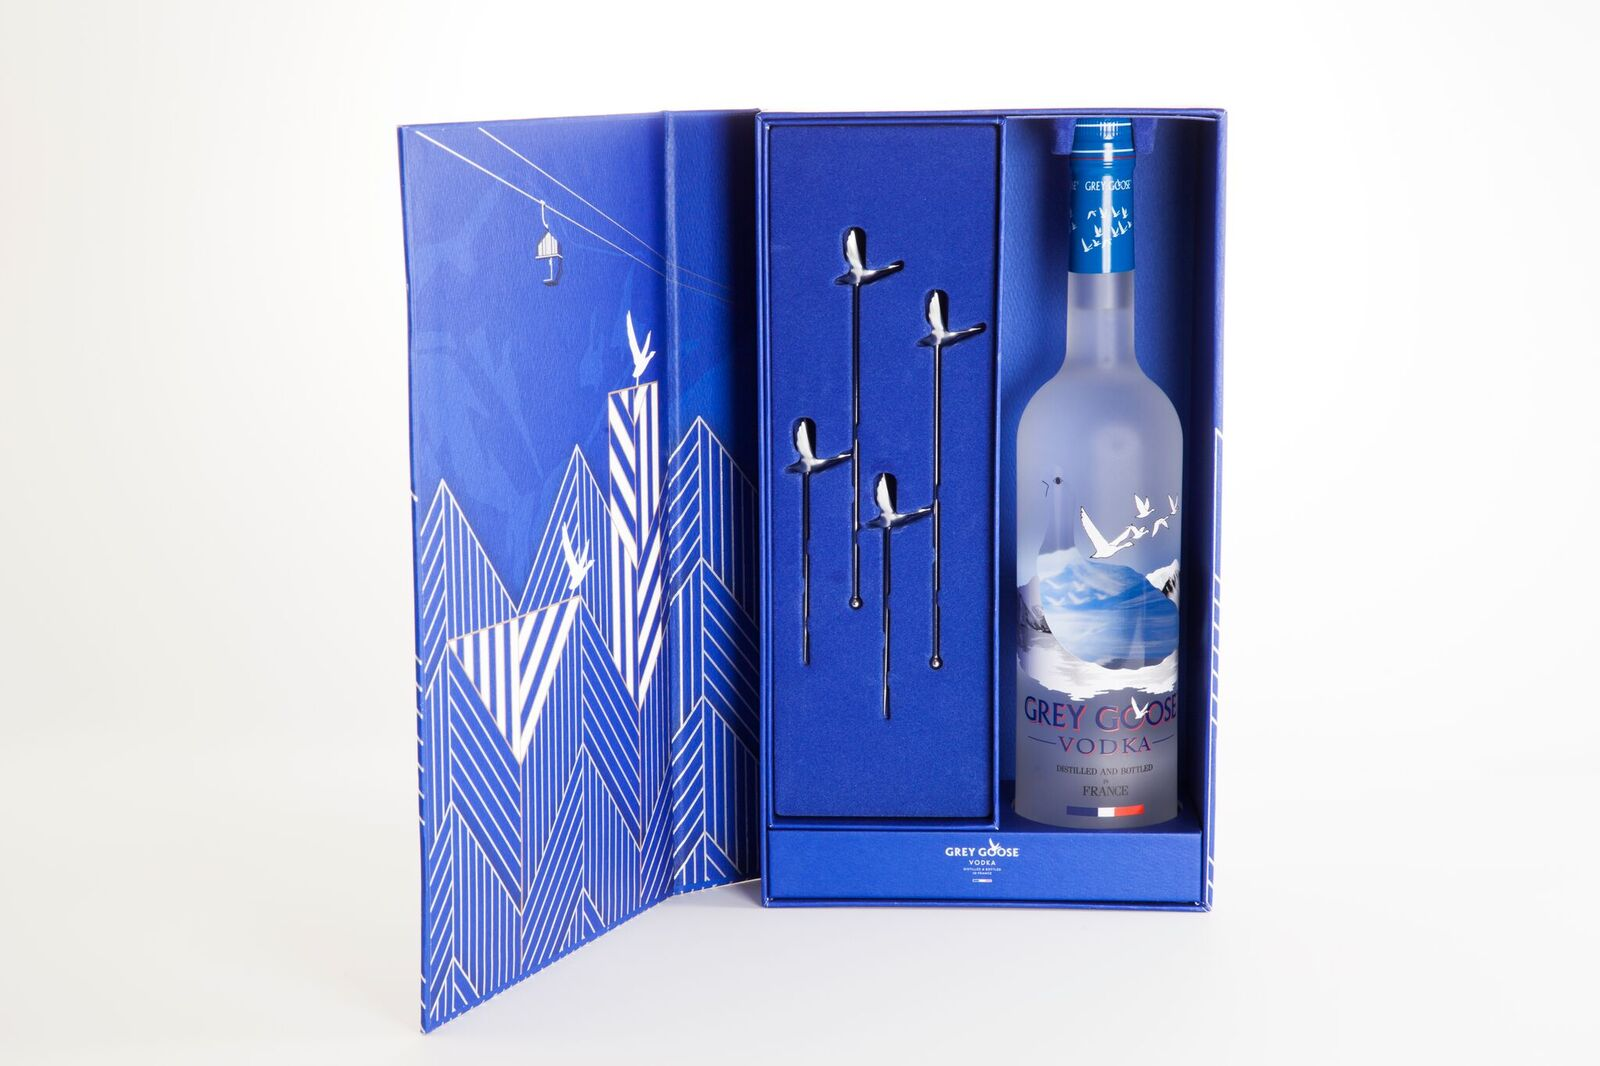 The Grey Goose Holiday Gift Set